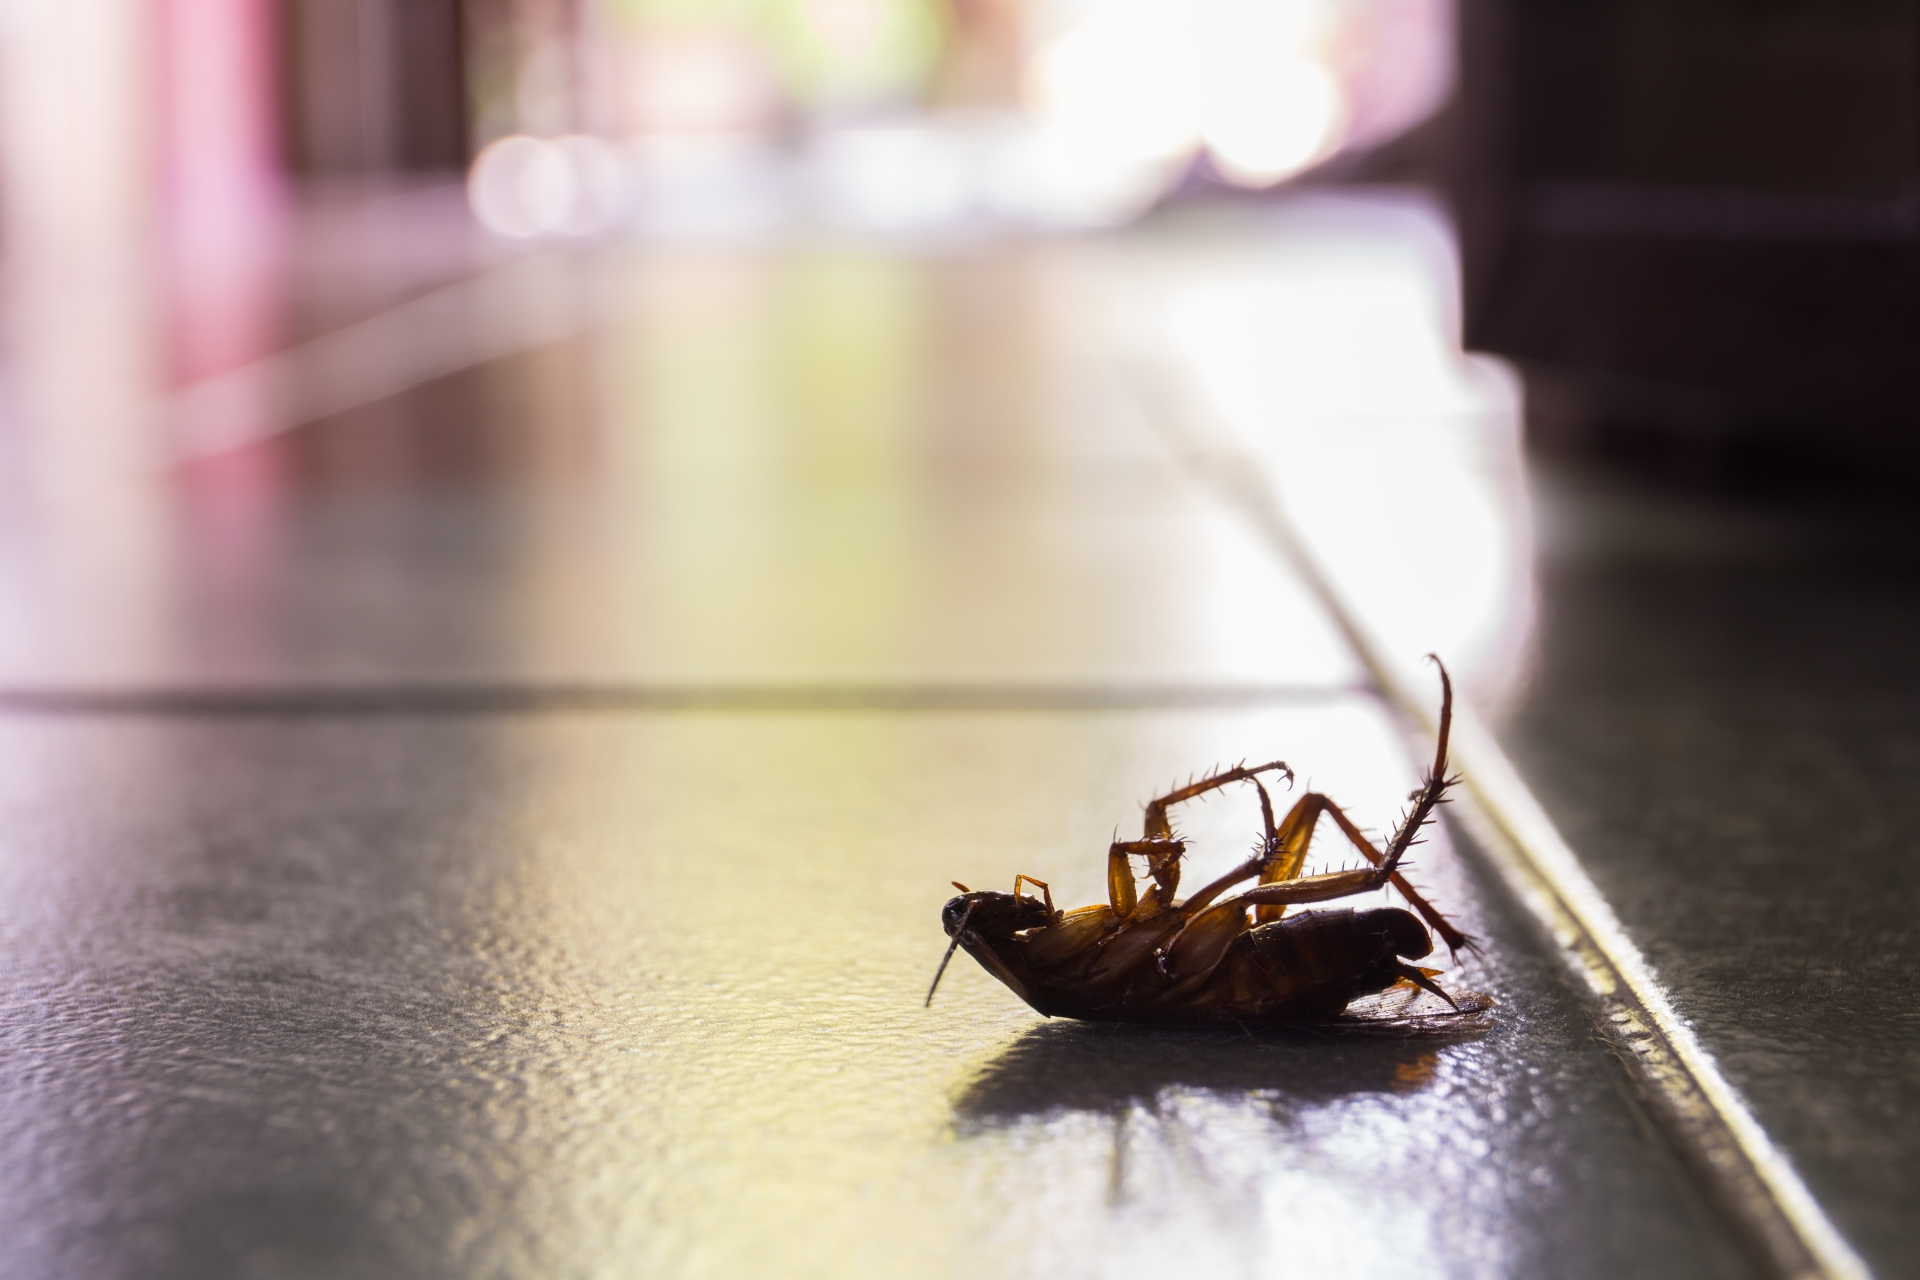 Cockroach Control, Pest Control in Erith Marshes, DA18. Call Now 020 8166 9746